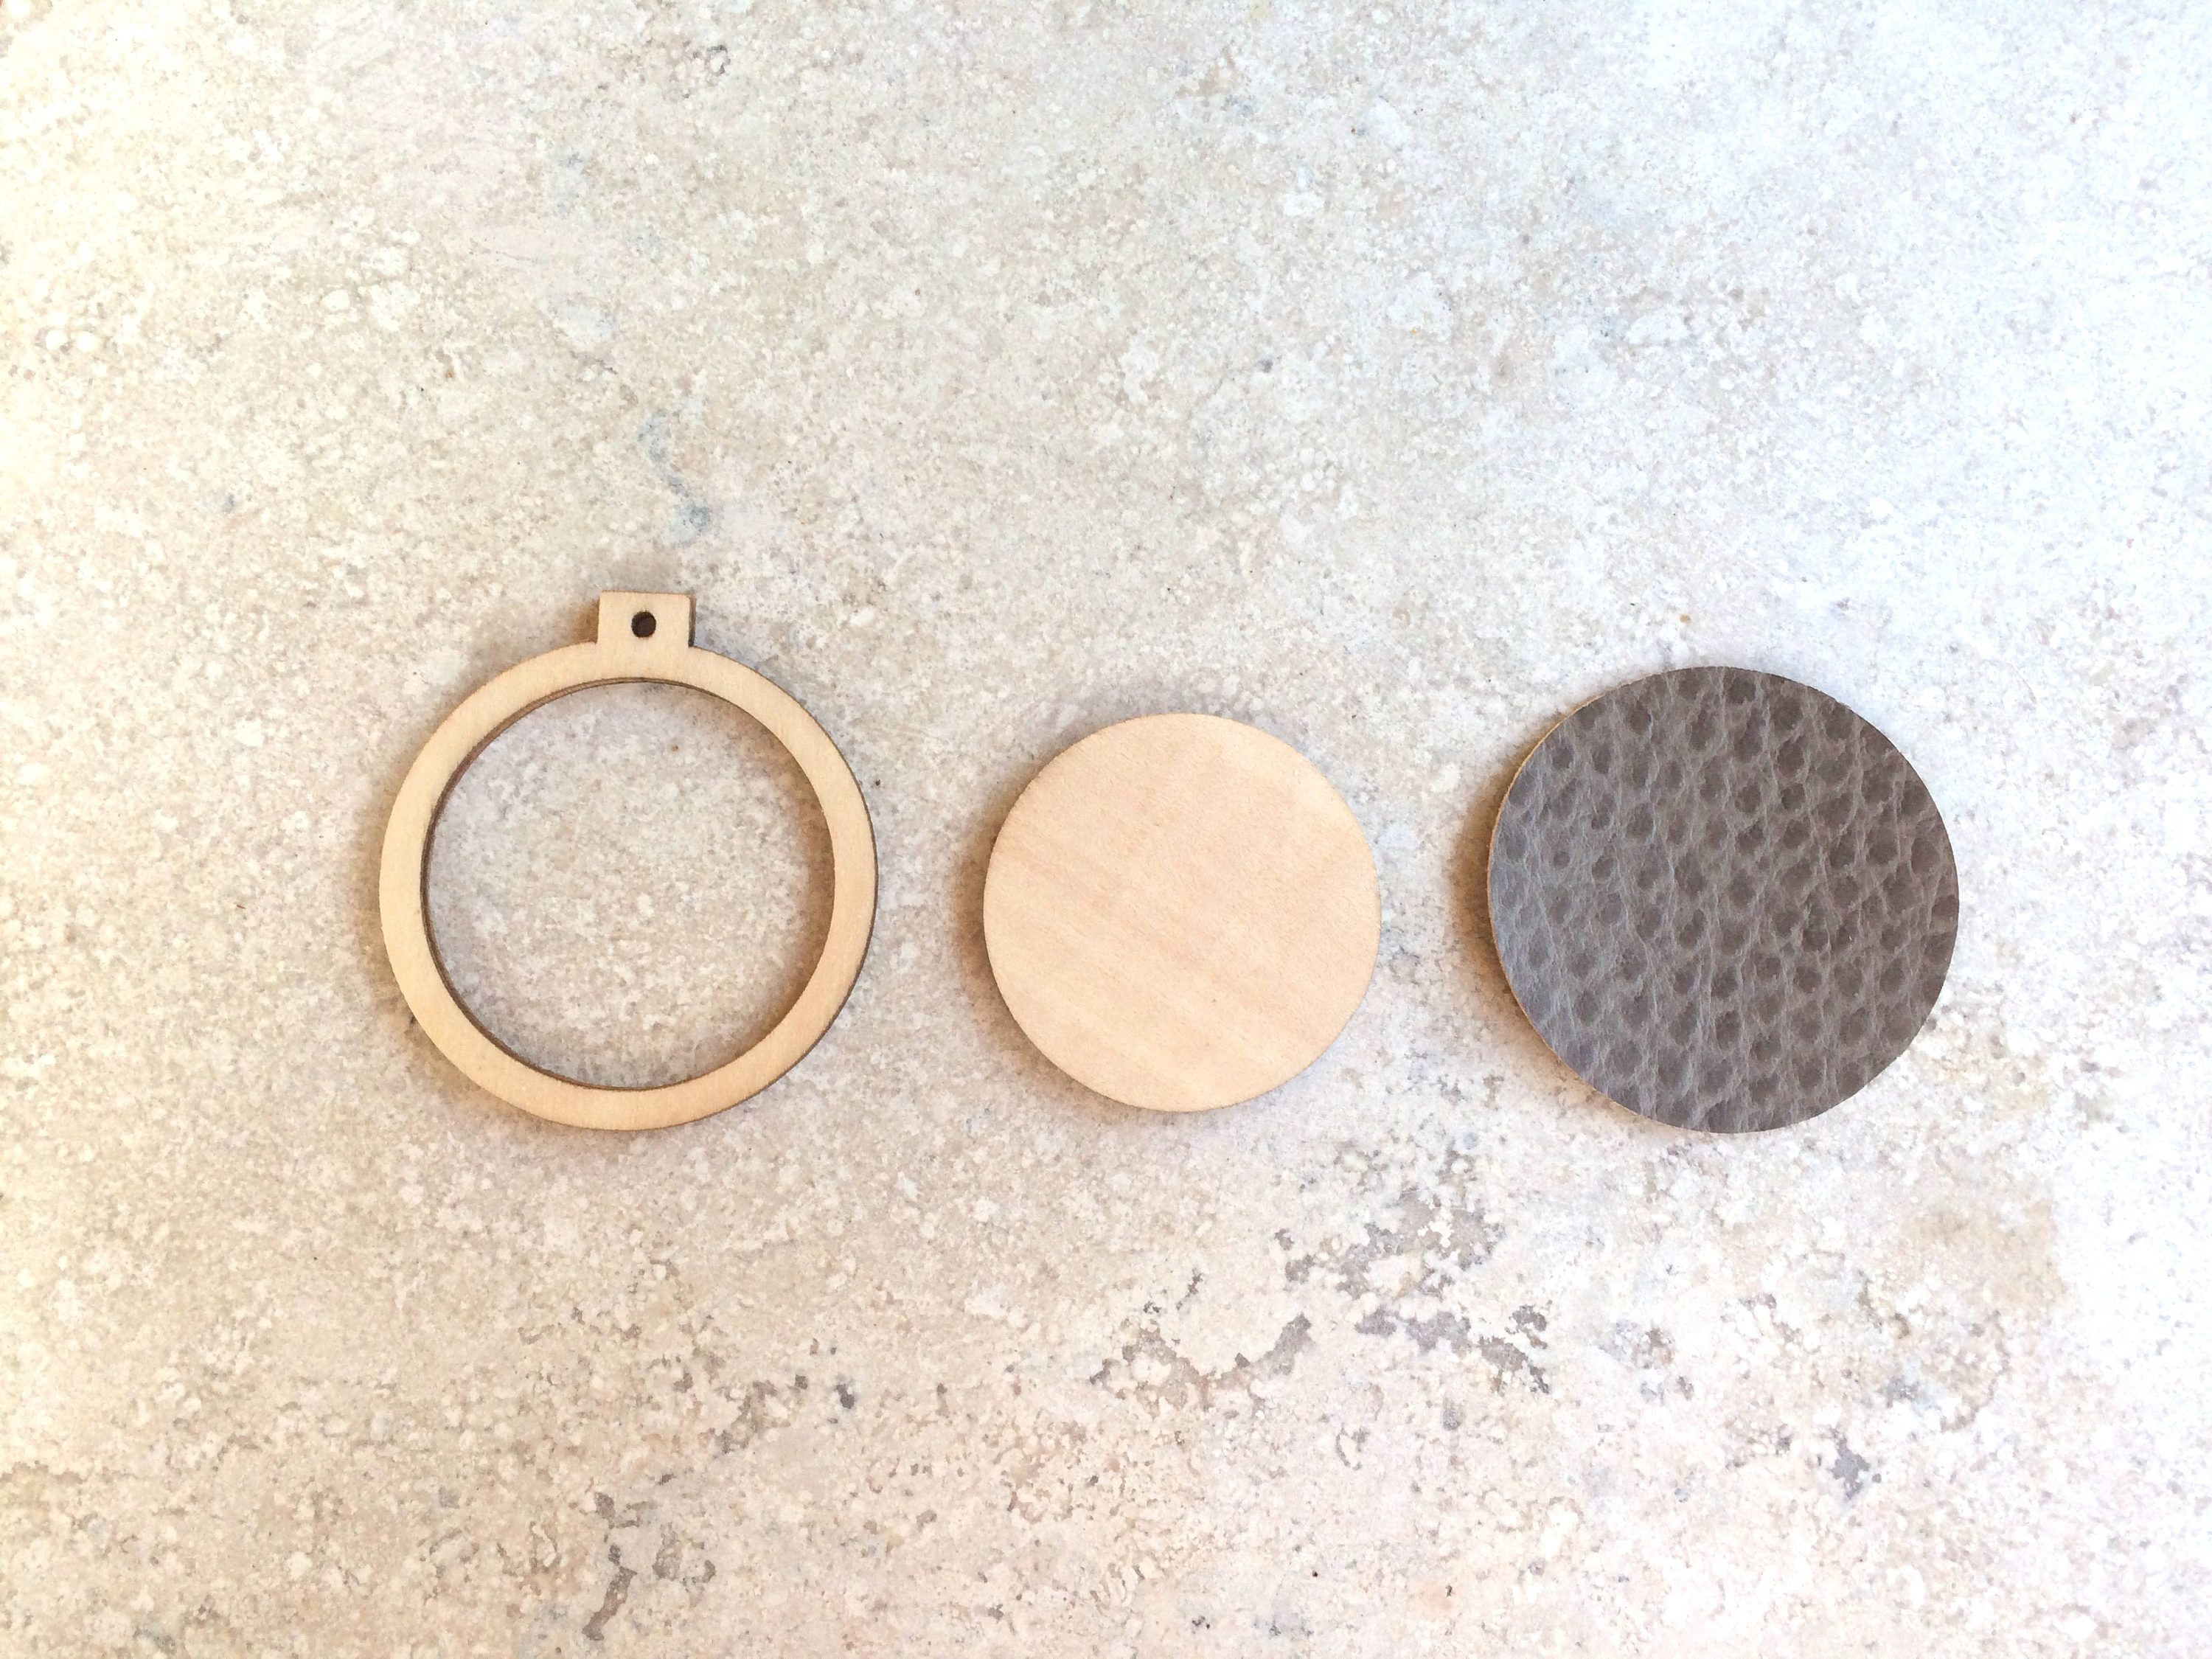 Diy miniature embroidery hoop wood pendant cross stitch hoop make your own embroidered necklace diy miniature embroidery hoop wood pendant cross stitch hoop aloadofball Images